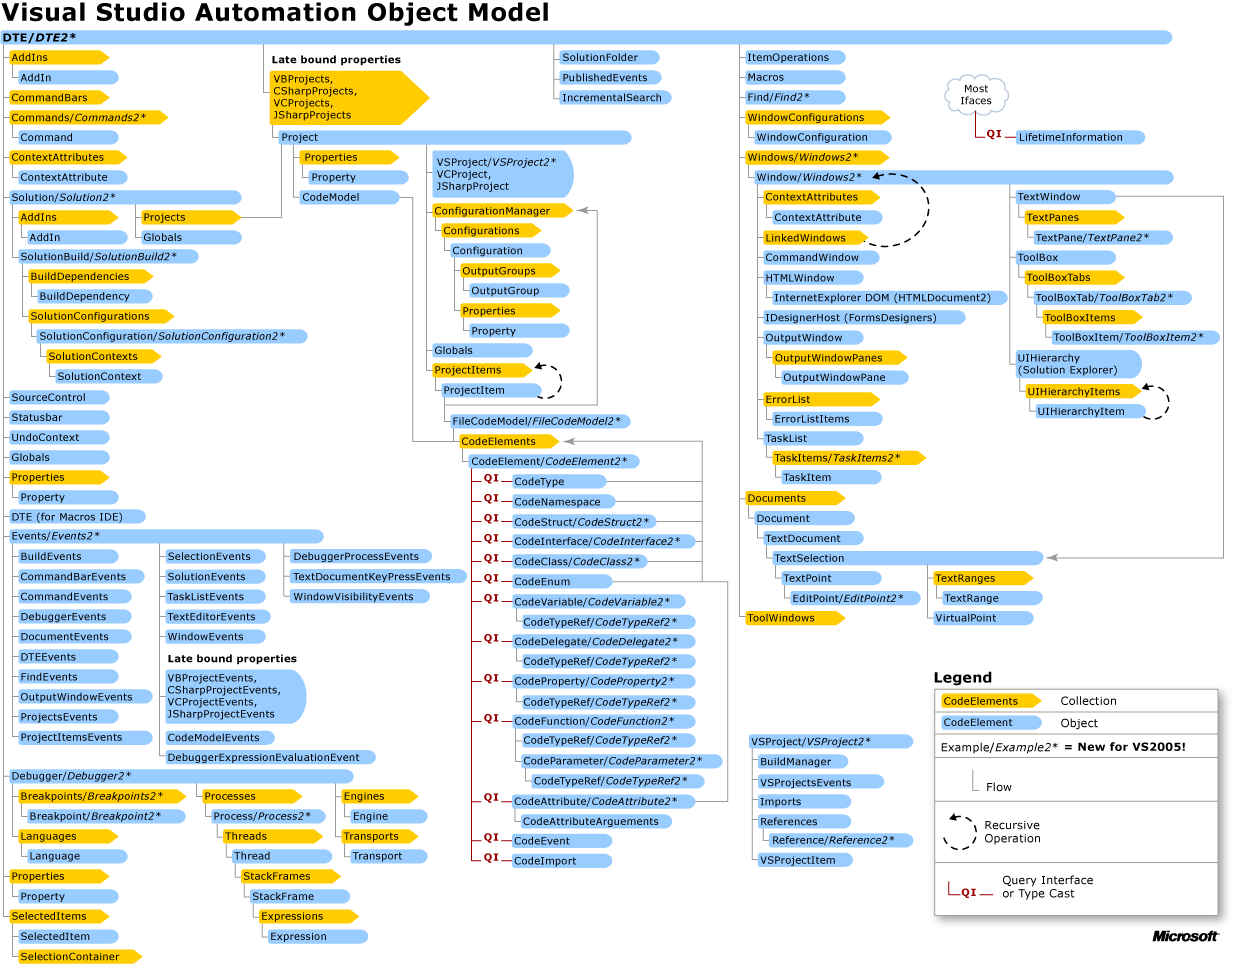 Using The Visual Studio Automation Object Model